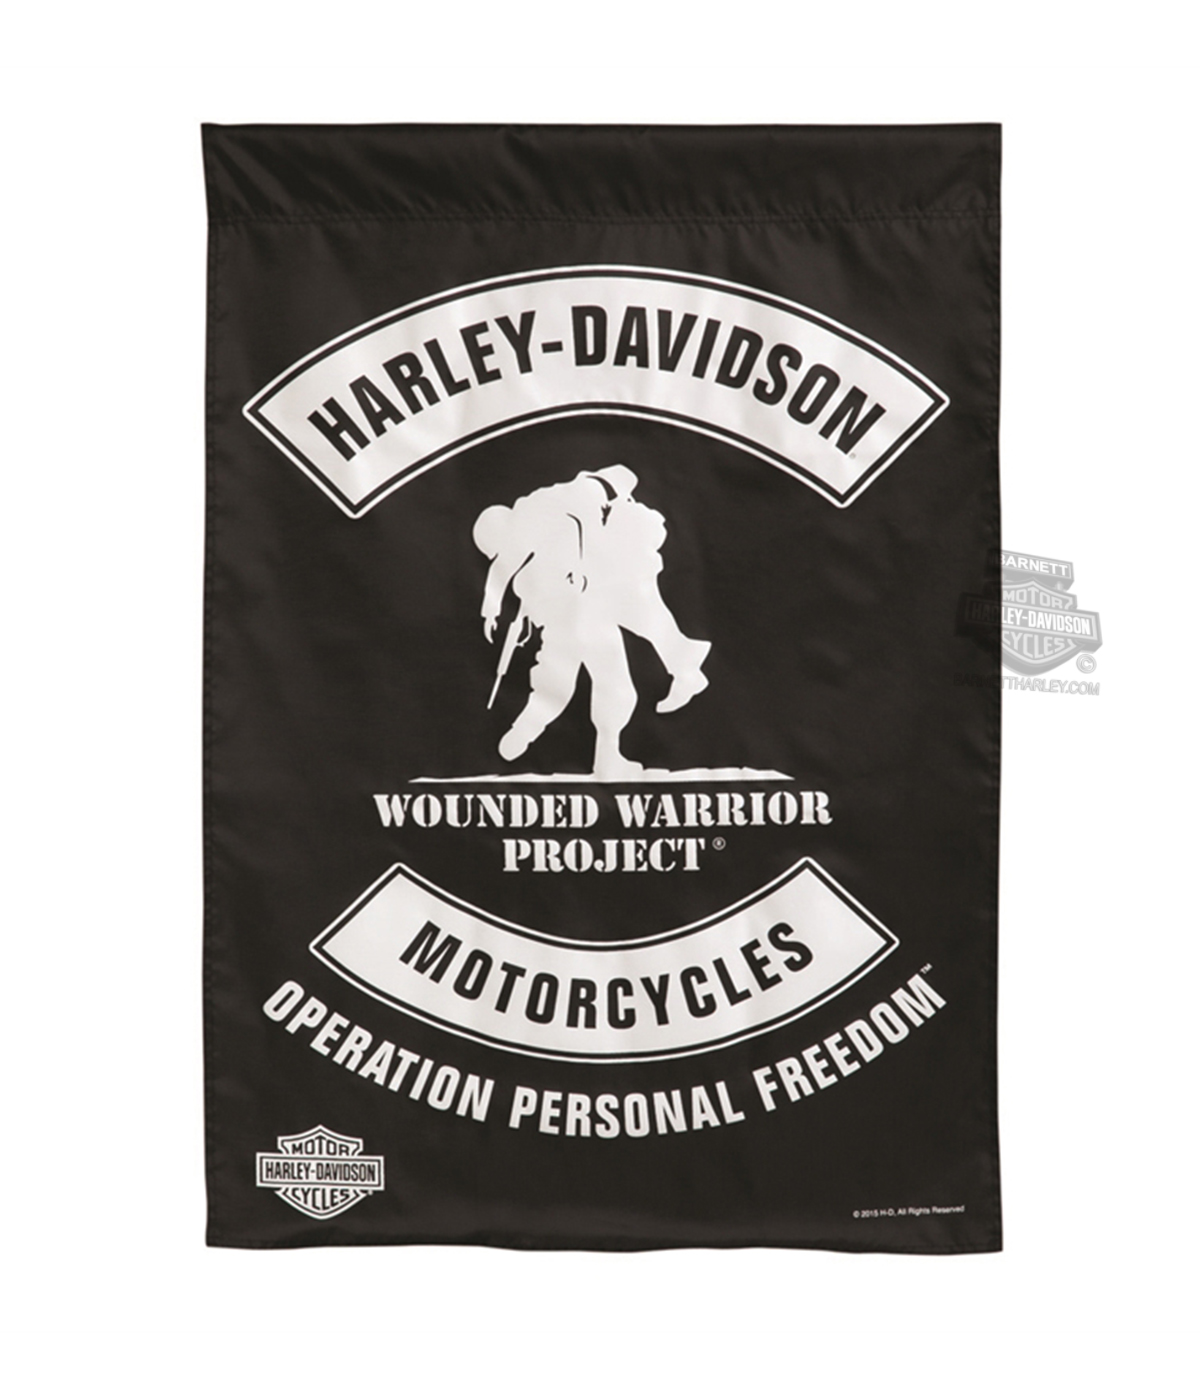 f7caa26b840 EE-134916 - Harley-Davidson® Operation Personal Freedom™ Wounded ...